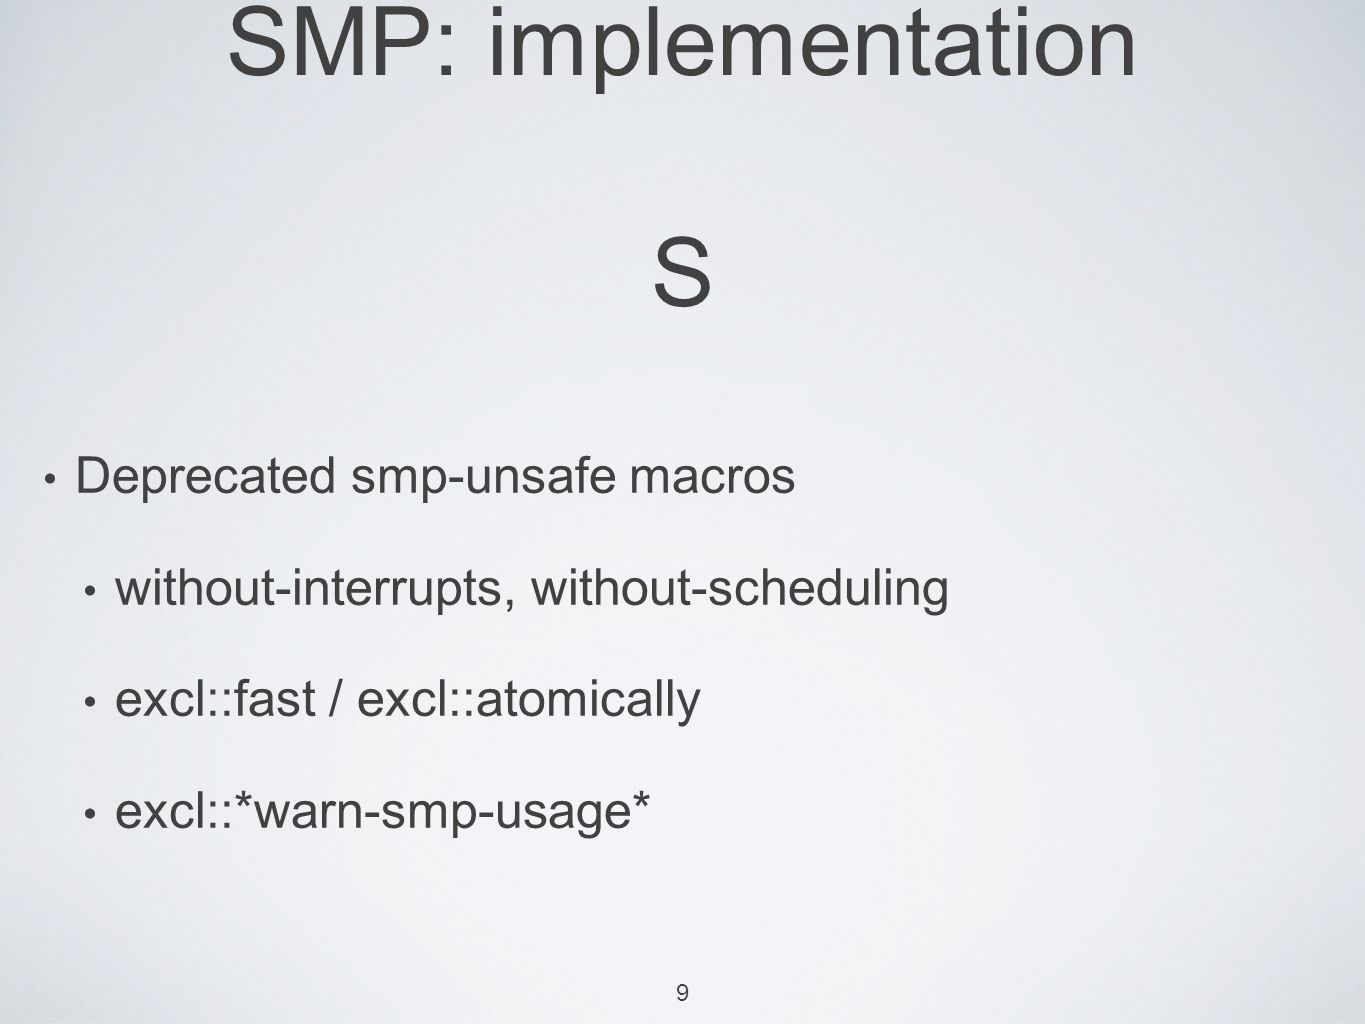 10 SMP: Implementation New Macros fast-and-clean: replaces (excl::fast (excl::atomically...)) with-pinned-objects: replaces (excl::fast (excl::atomically...)) with-delayed-interrupts: replaces without- {interrupts,scheduling} defvar-nonbindable